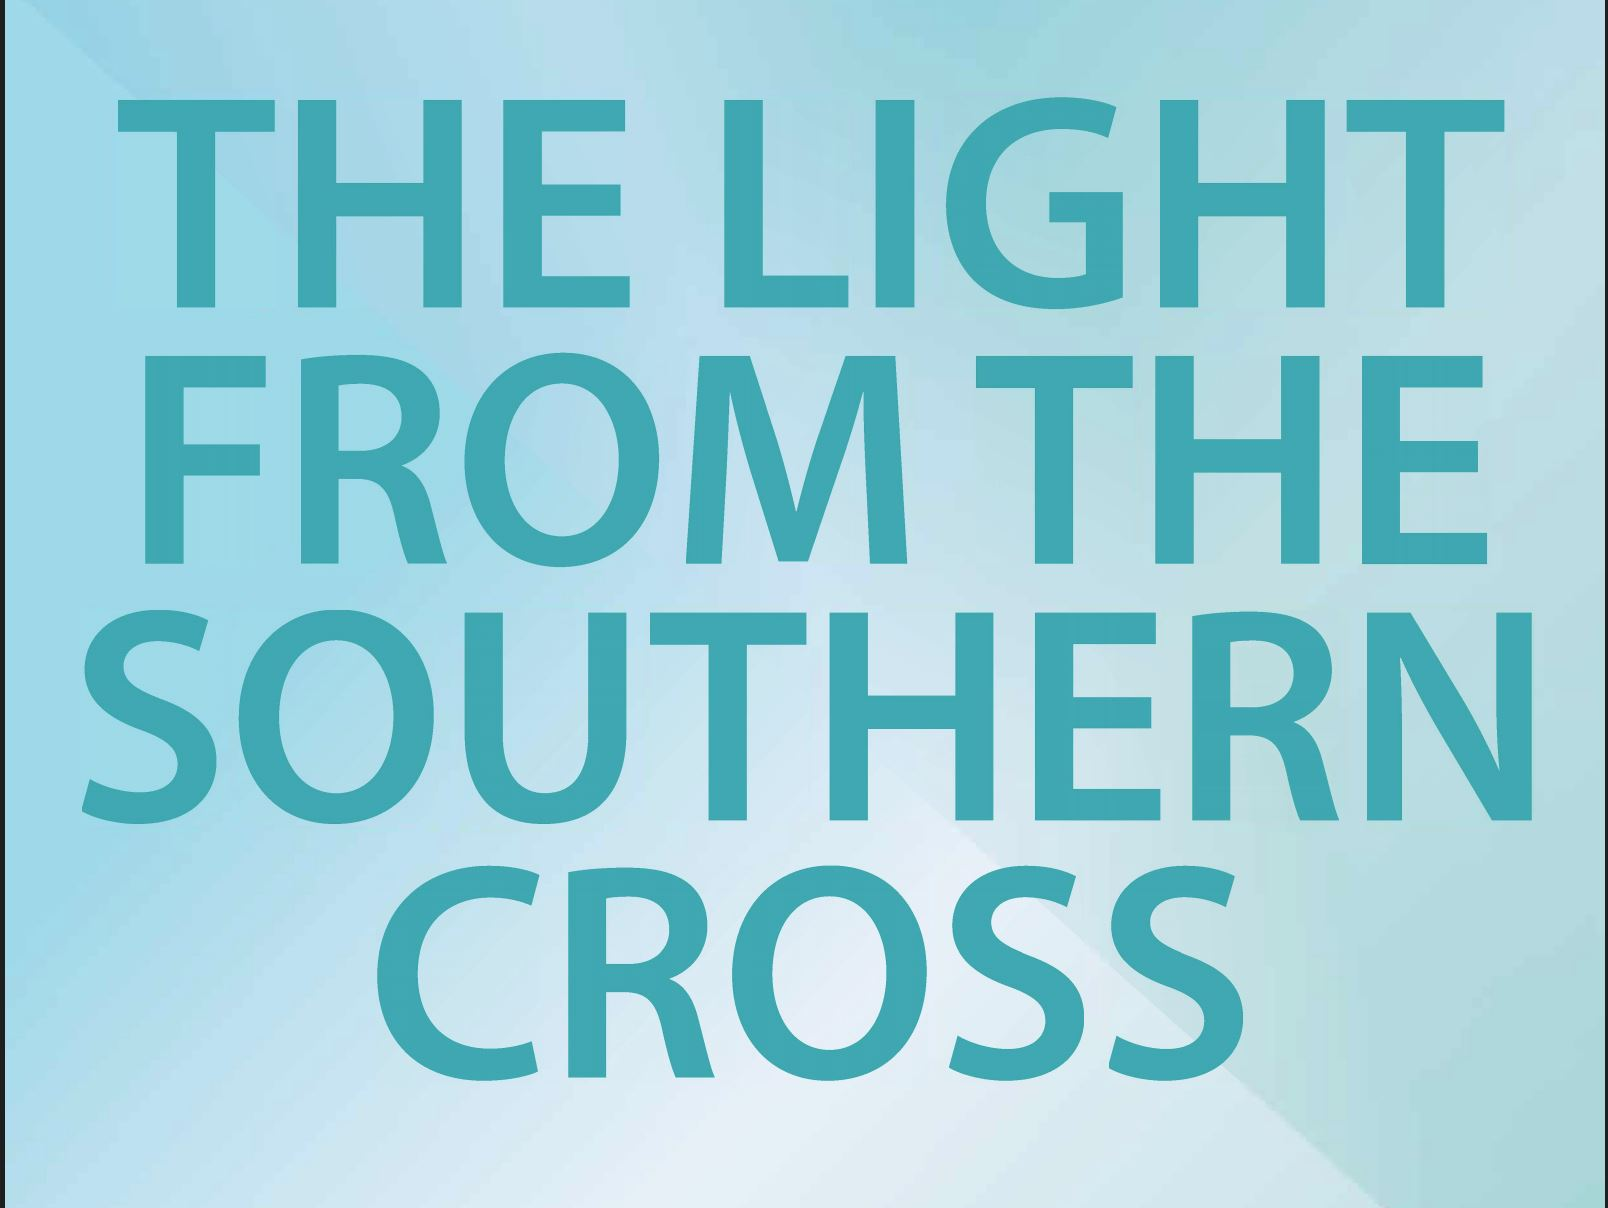 Light from South Cross Report cover